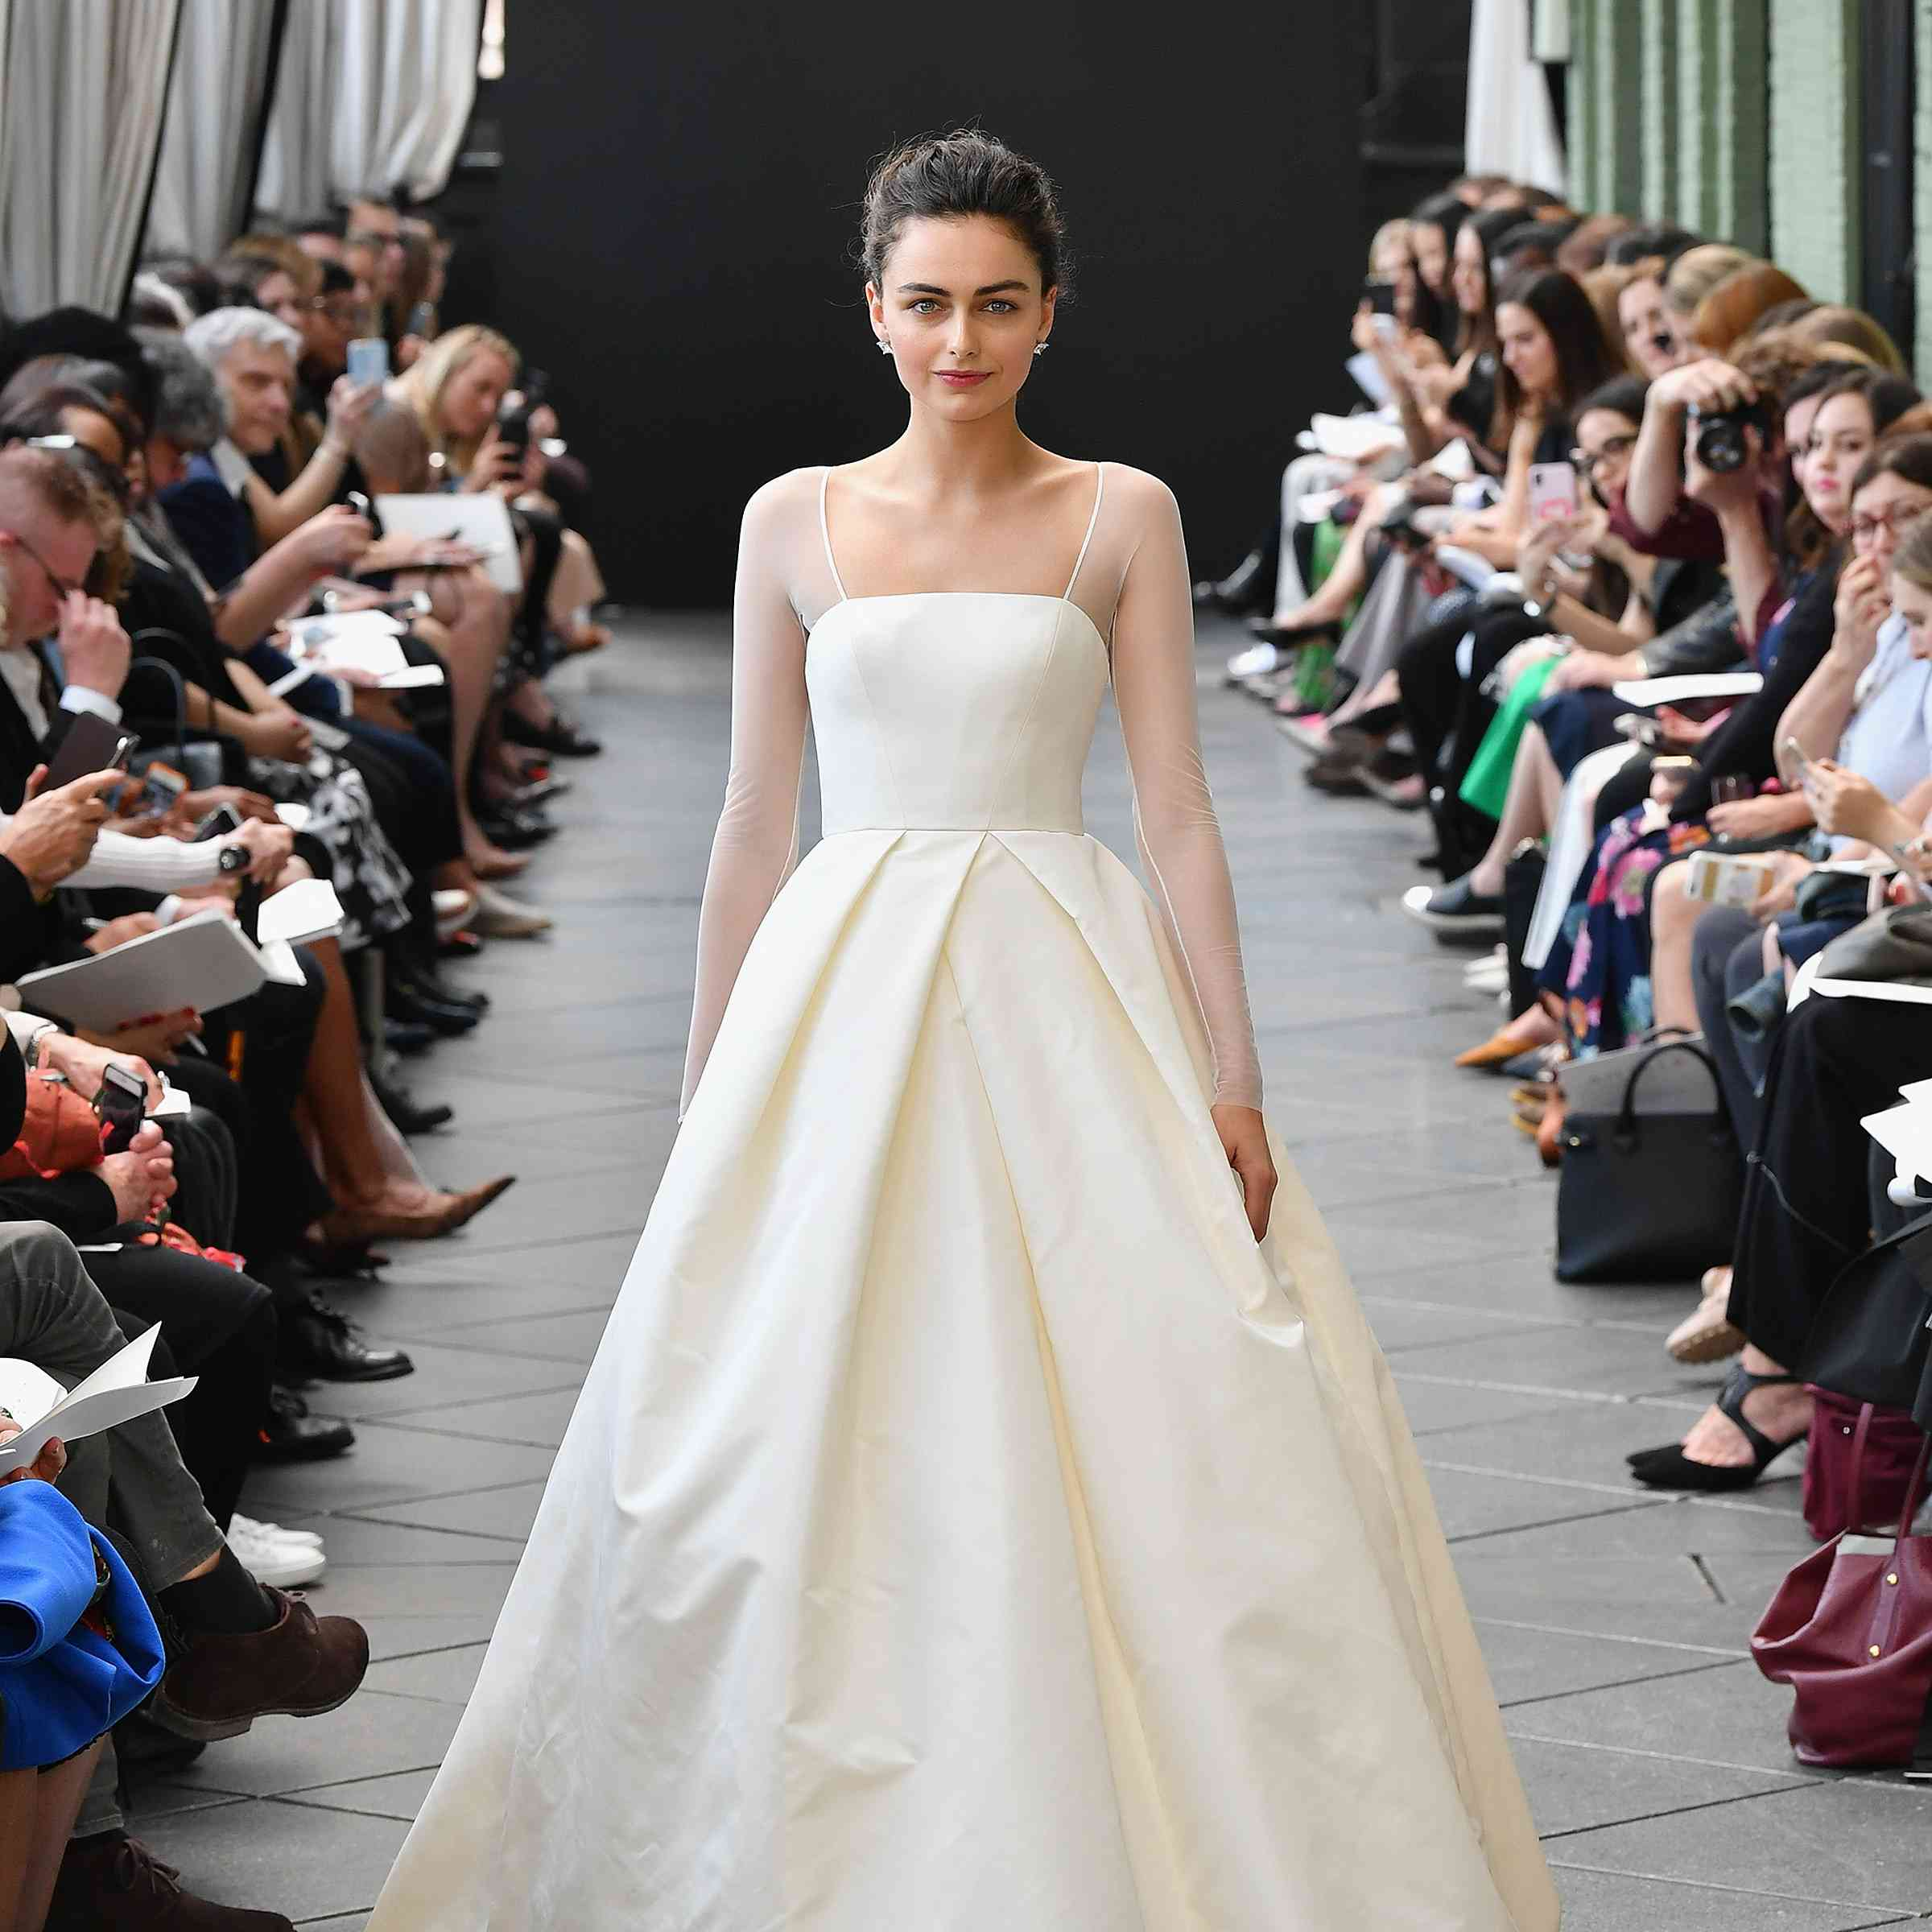 Wedding Gown Cleaning: The Top Wedding Dress Trends Of 2019